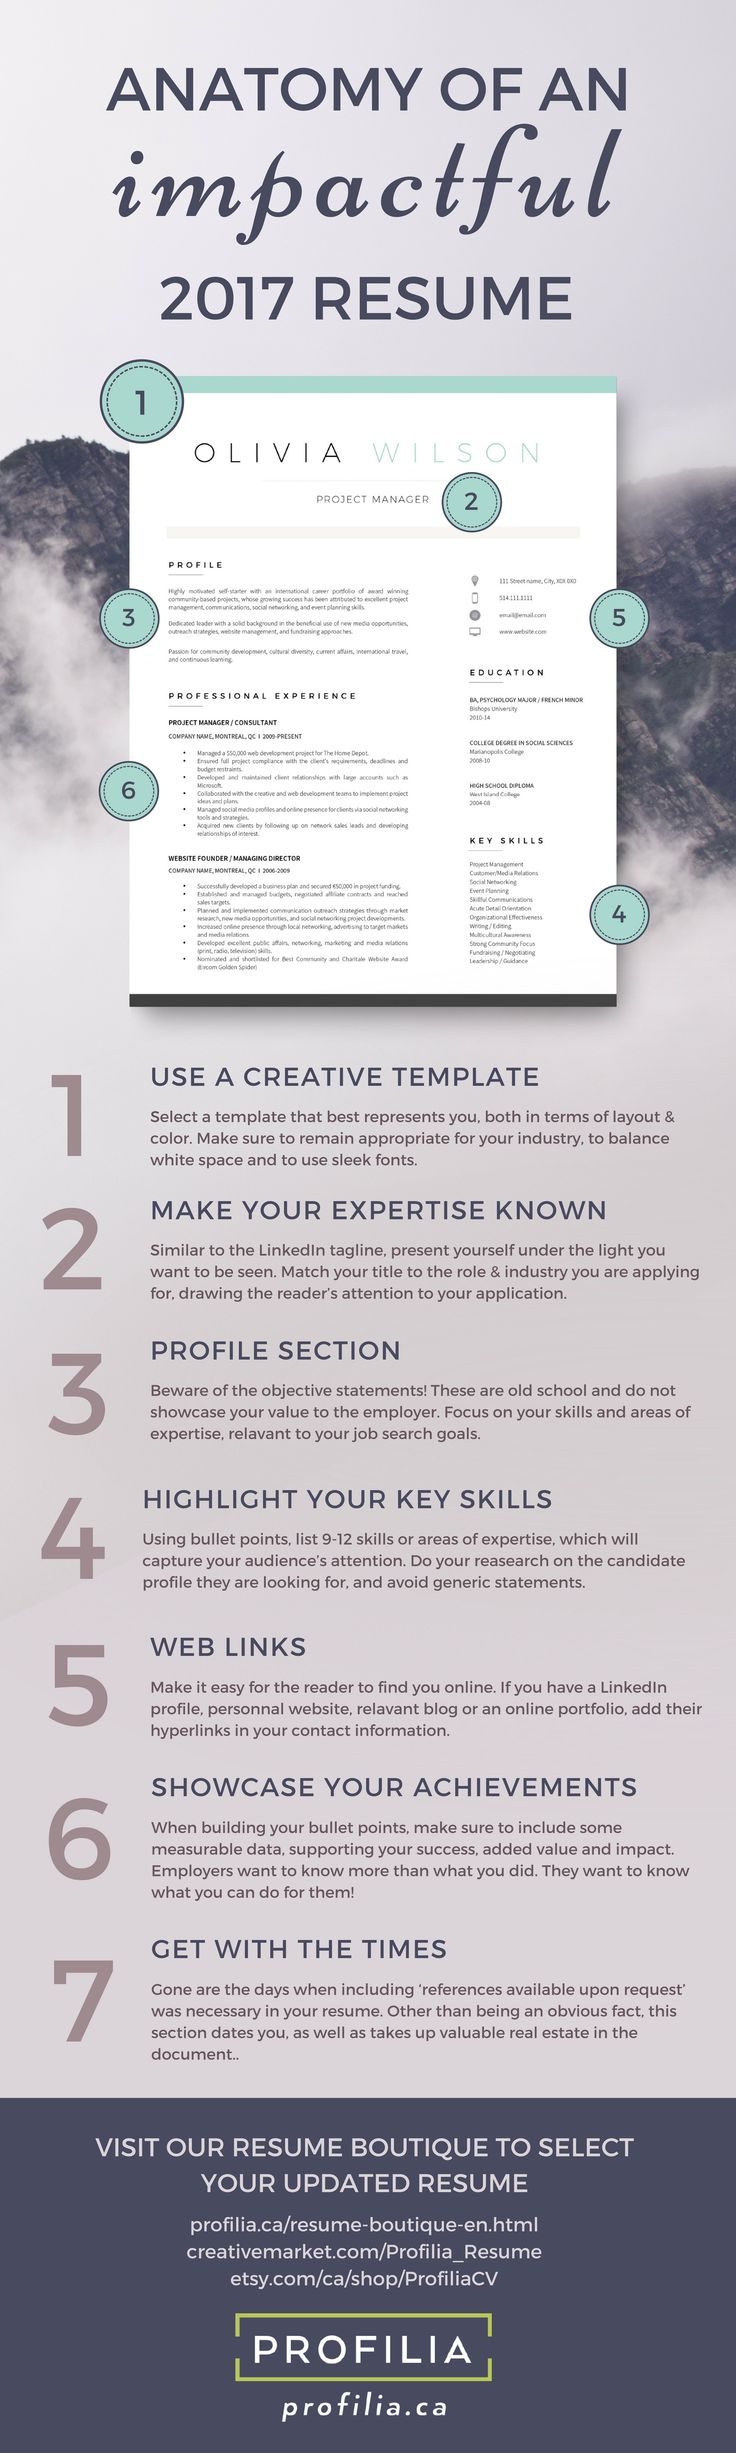 Word Resume u0026 Cover Letter Template 387